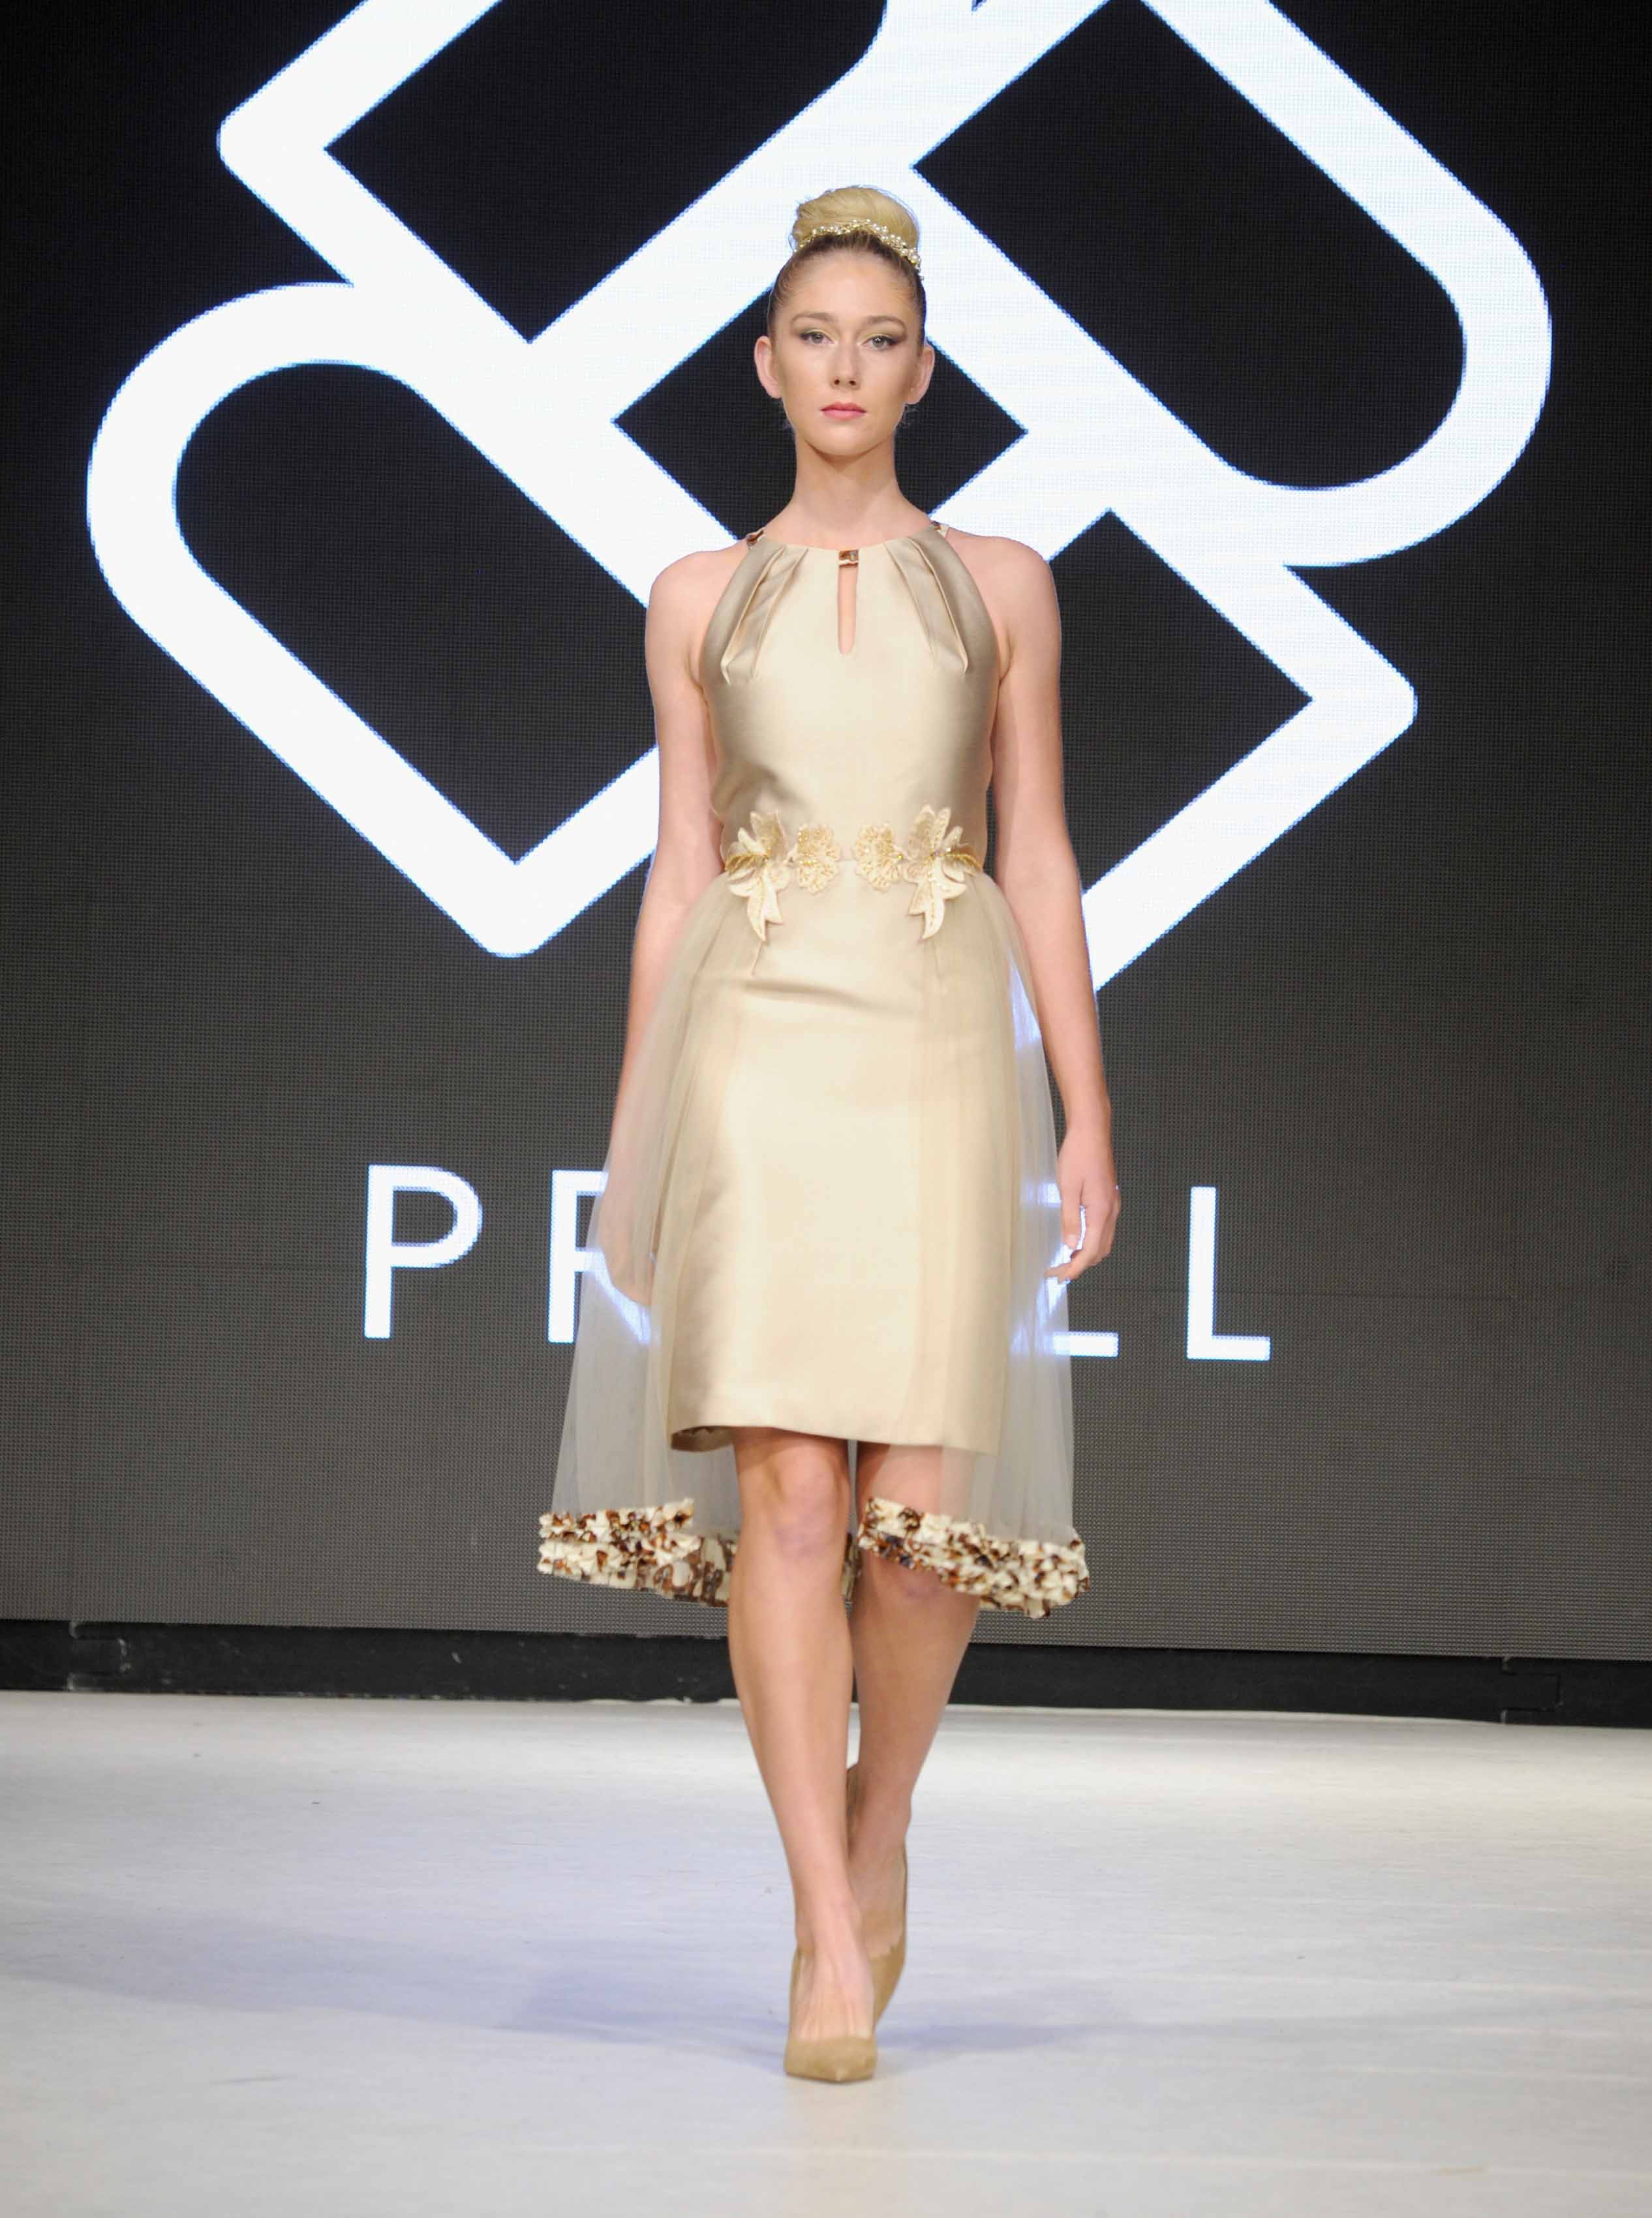 VANCOUVER, BC - SEPTEMBER 23:  A model walks the runway wearing Priszl at 2017 Vancouver Fashion Week - Day 6 on September 23, 2017 in Vancouver, Canada.  (Photo by Arun Nevader/Getty Images for VFW Management INC)